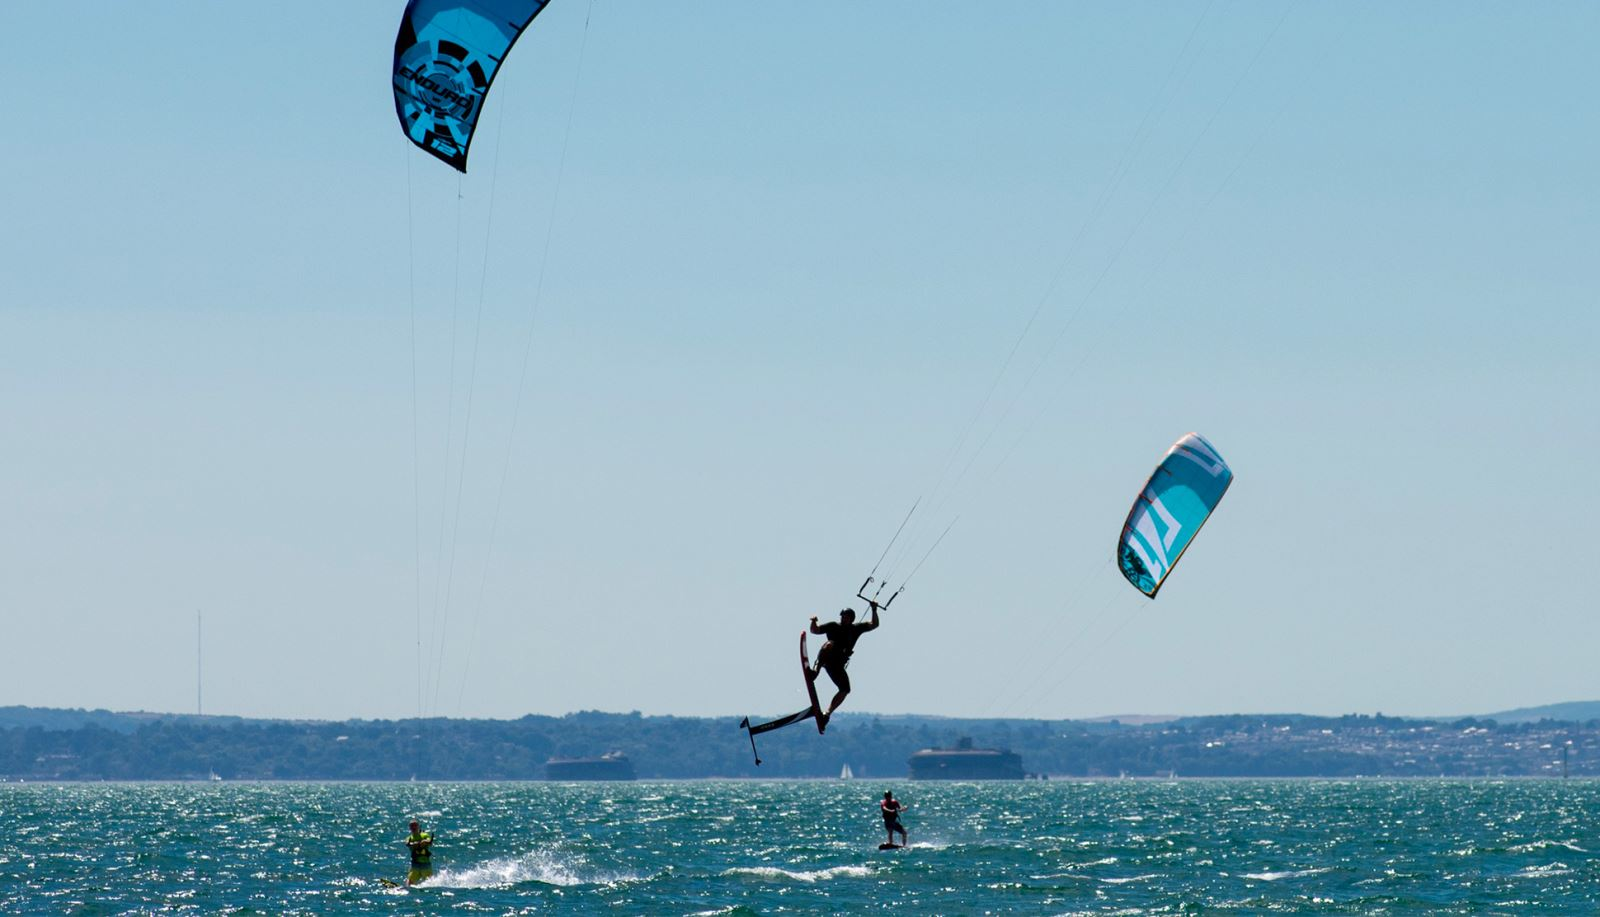 Kitesurfing on Hayling Island